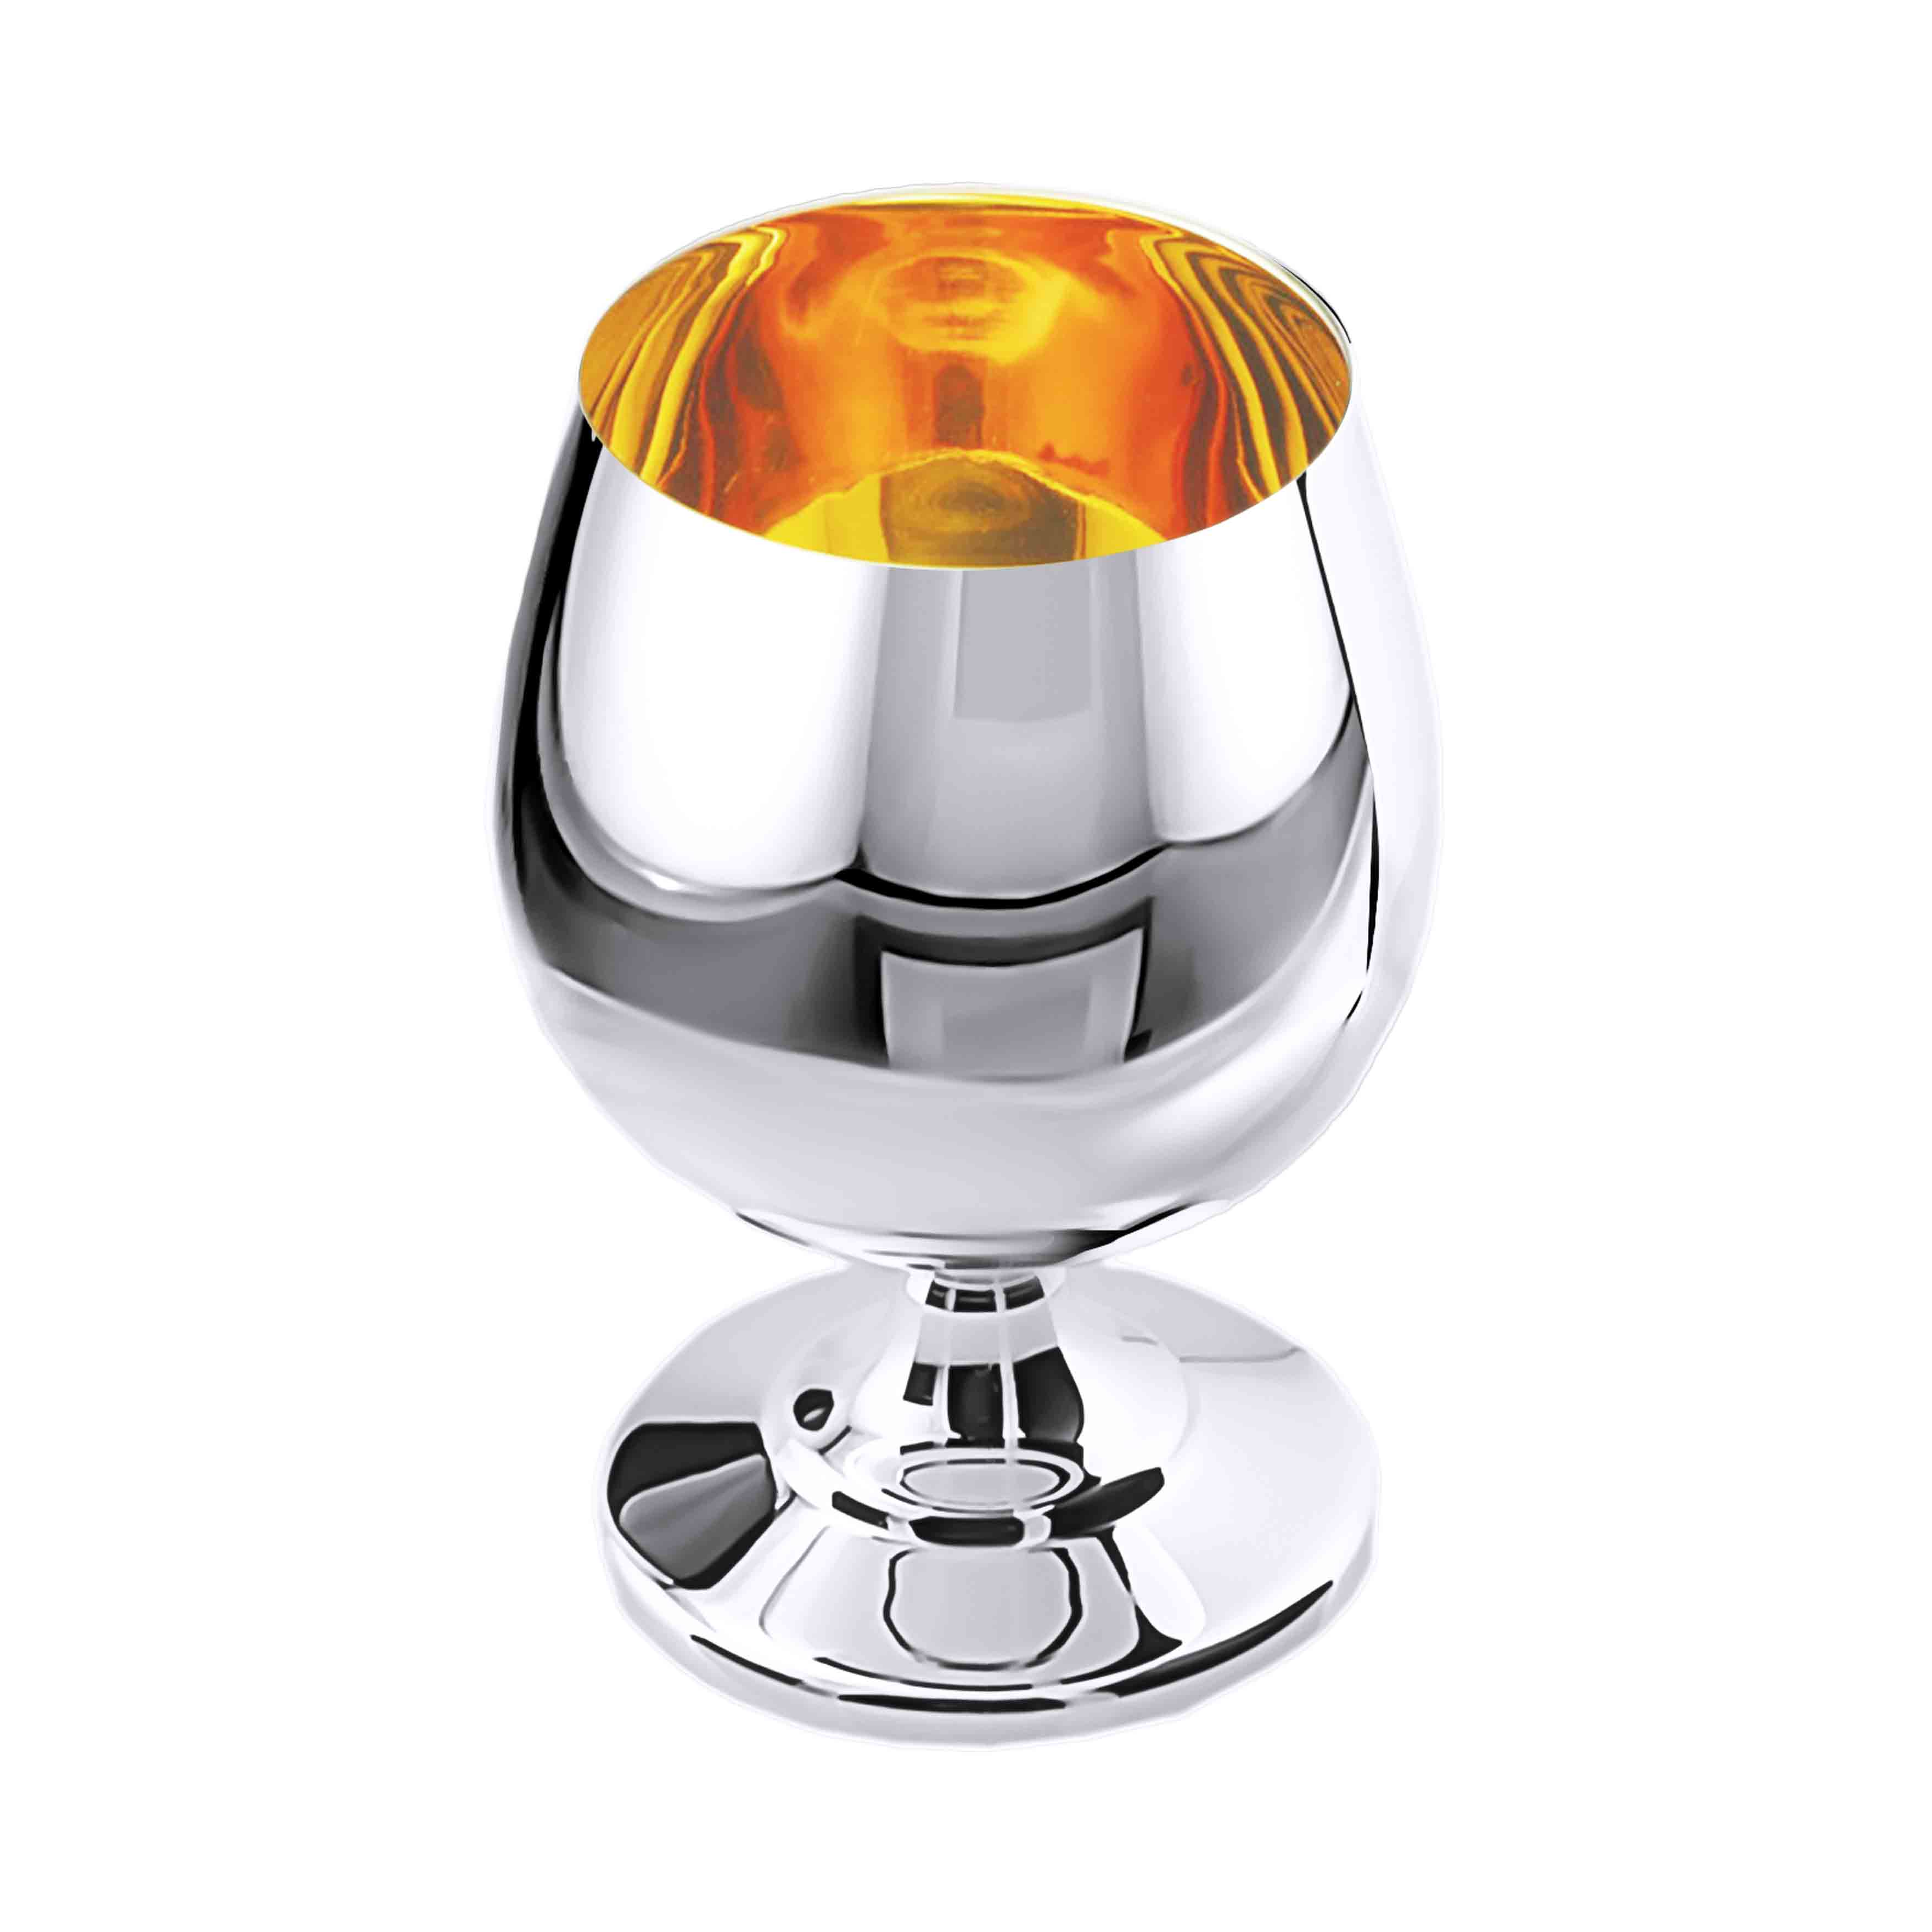 50ml Polished Silver Cognac Snifter